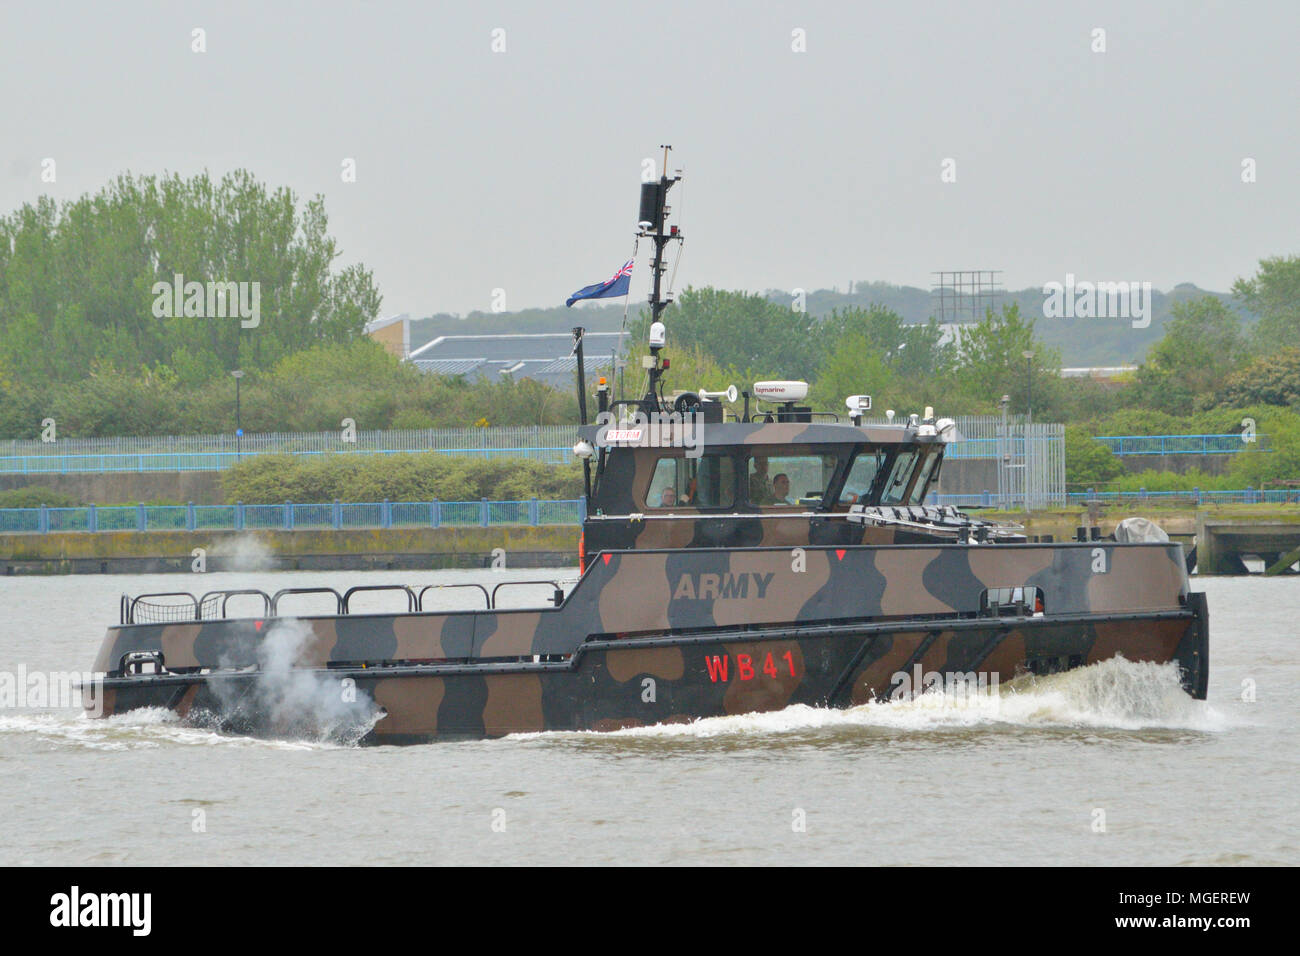 British Army workboat on River Thames in London - Stock Image